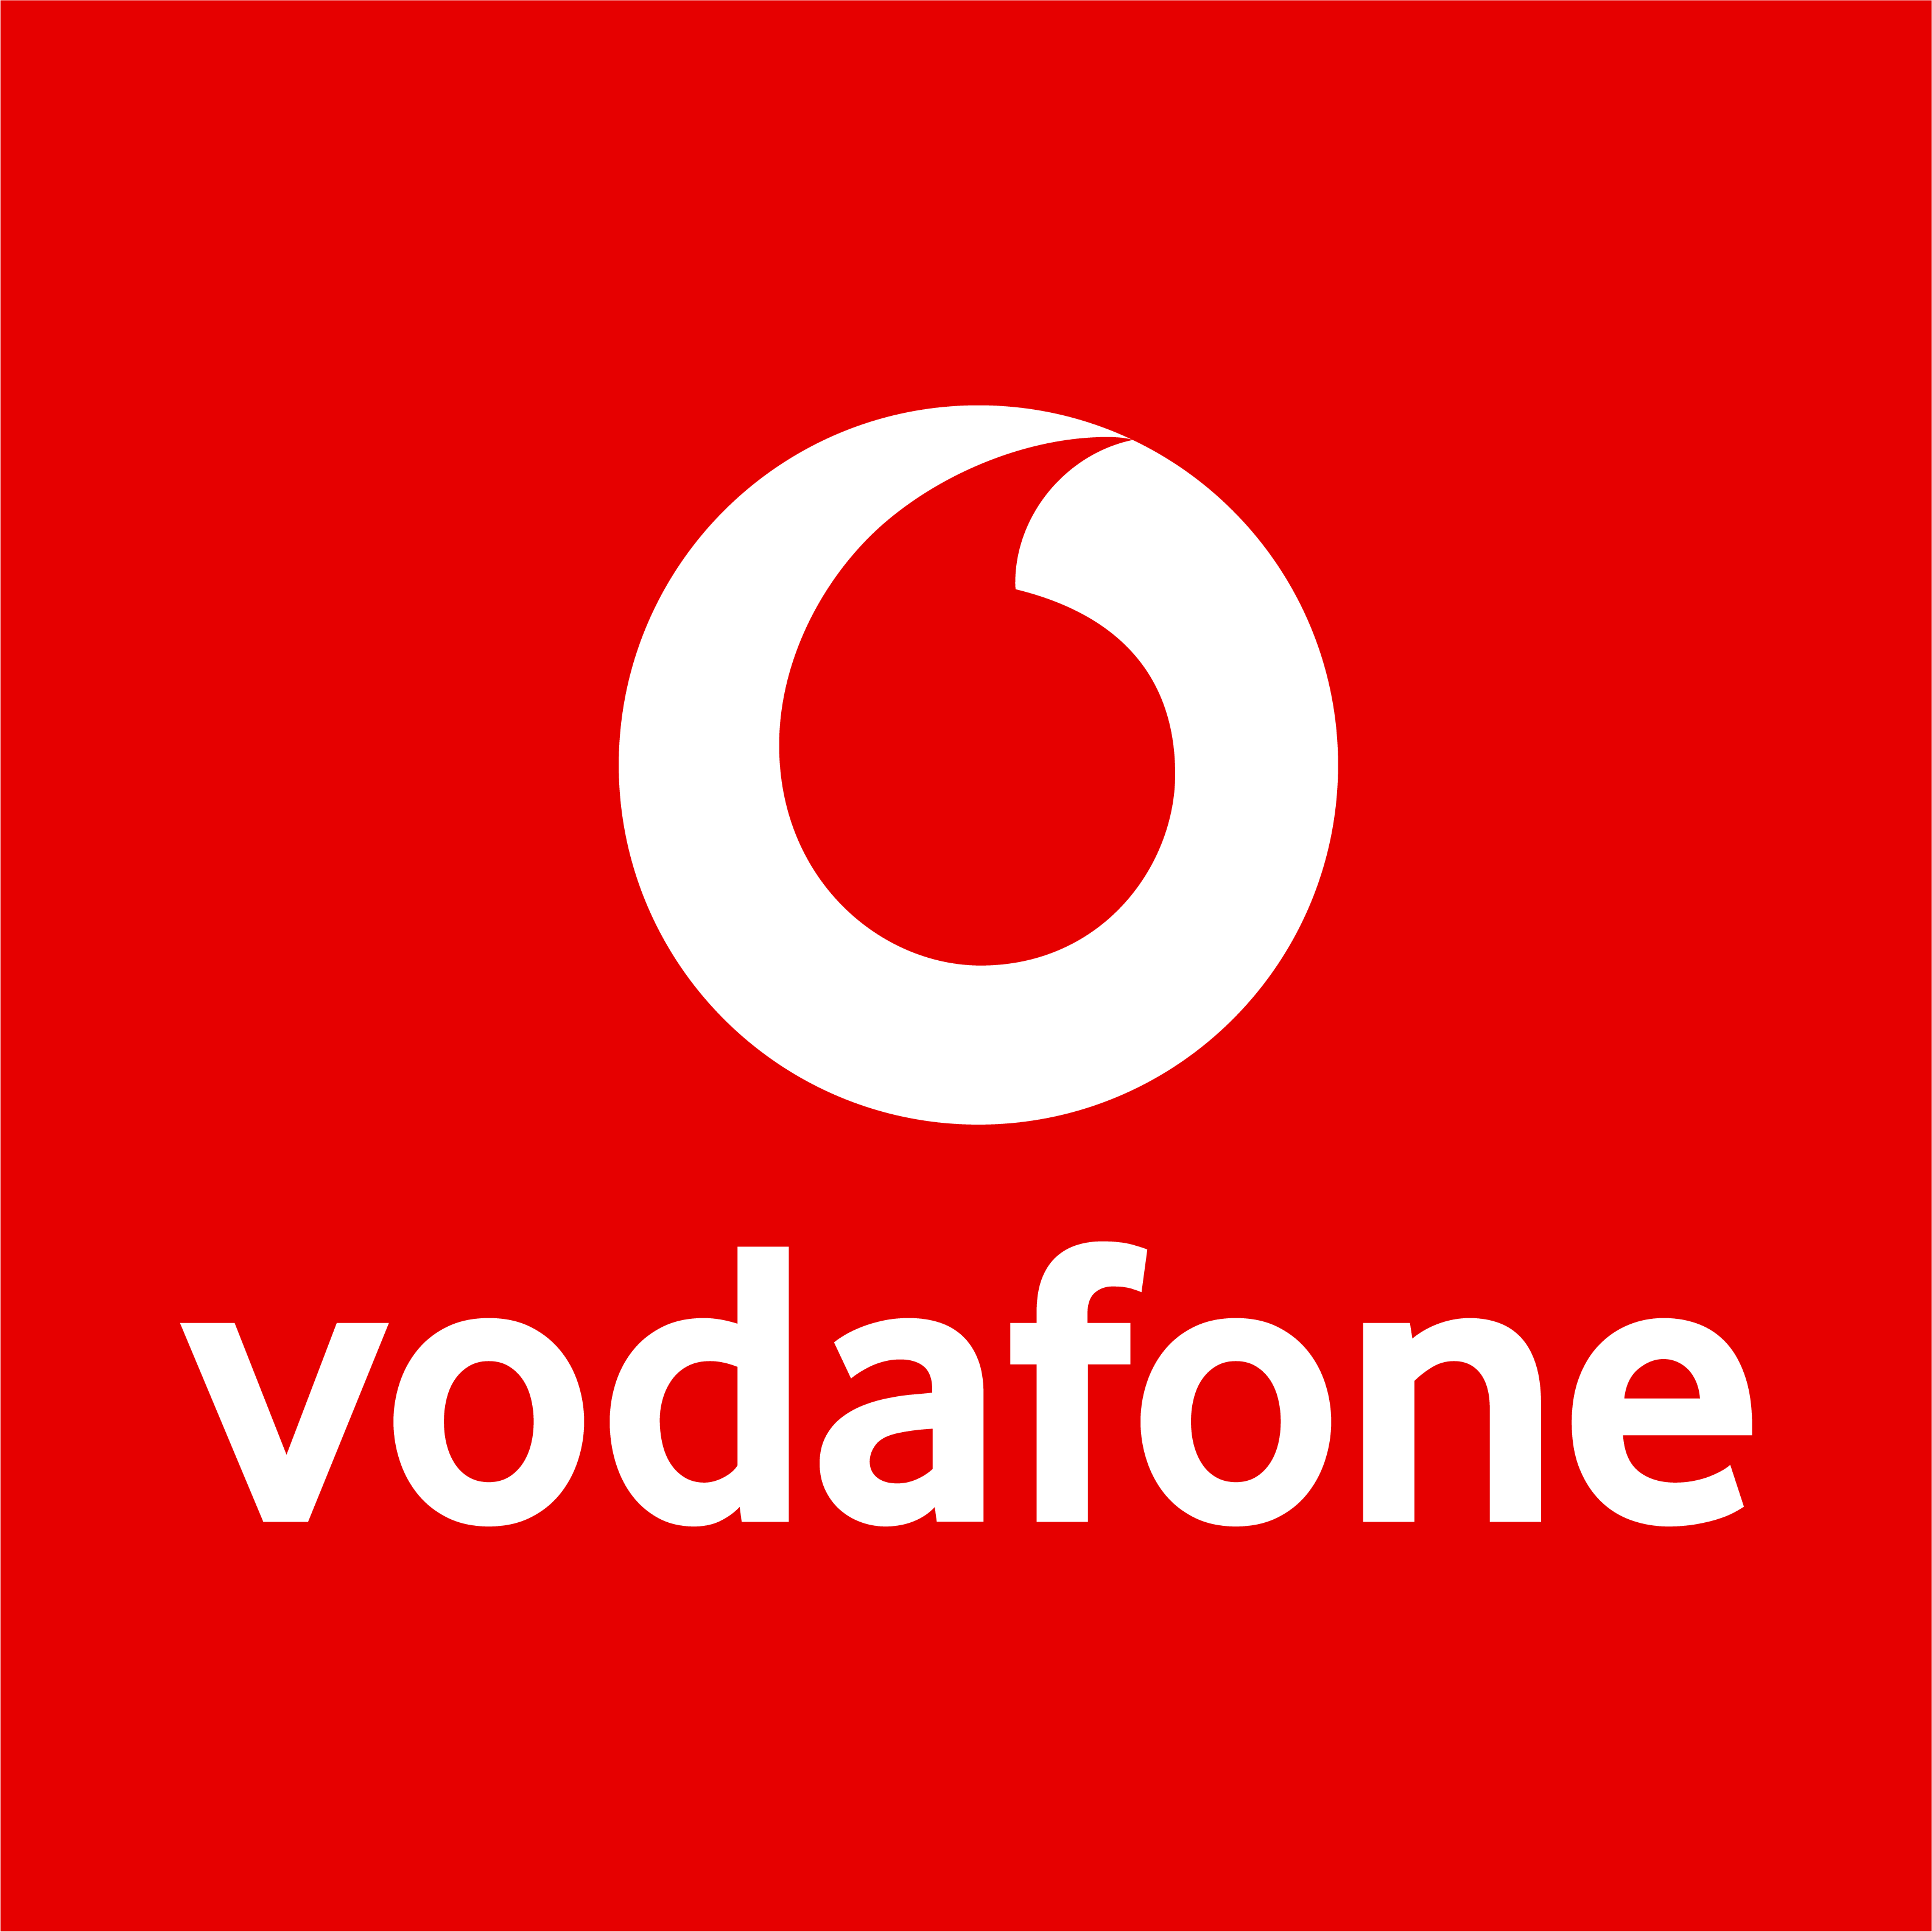 Vodafone Shop in Wuppertal